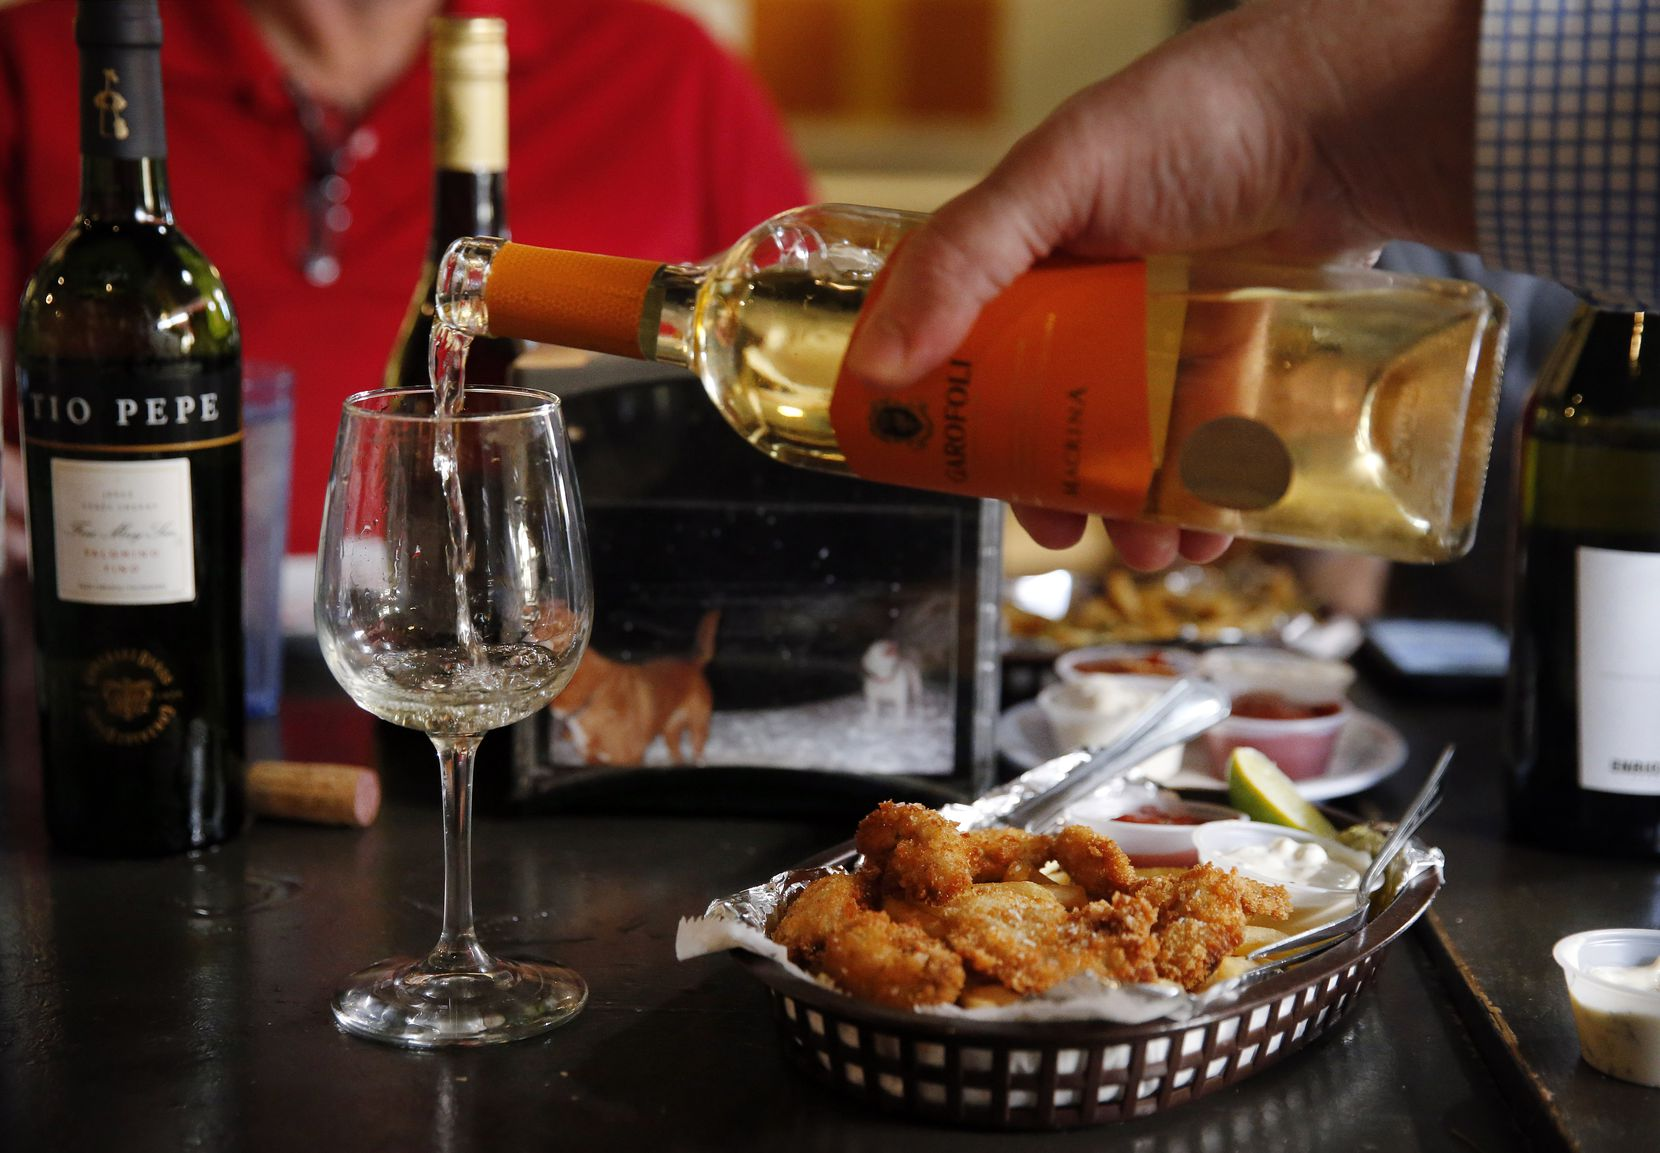 The Dallas Morning News wine panel paired wine with entrees from 20 Feet Seafood on Peavy Road in Dallas. They paired wines with various dishes, such as fried Ipswich whole belly clams, Blue Point oysters and fish & chips.  (Tom Fox/The Dallas Morning News)